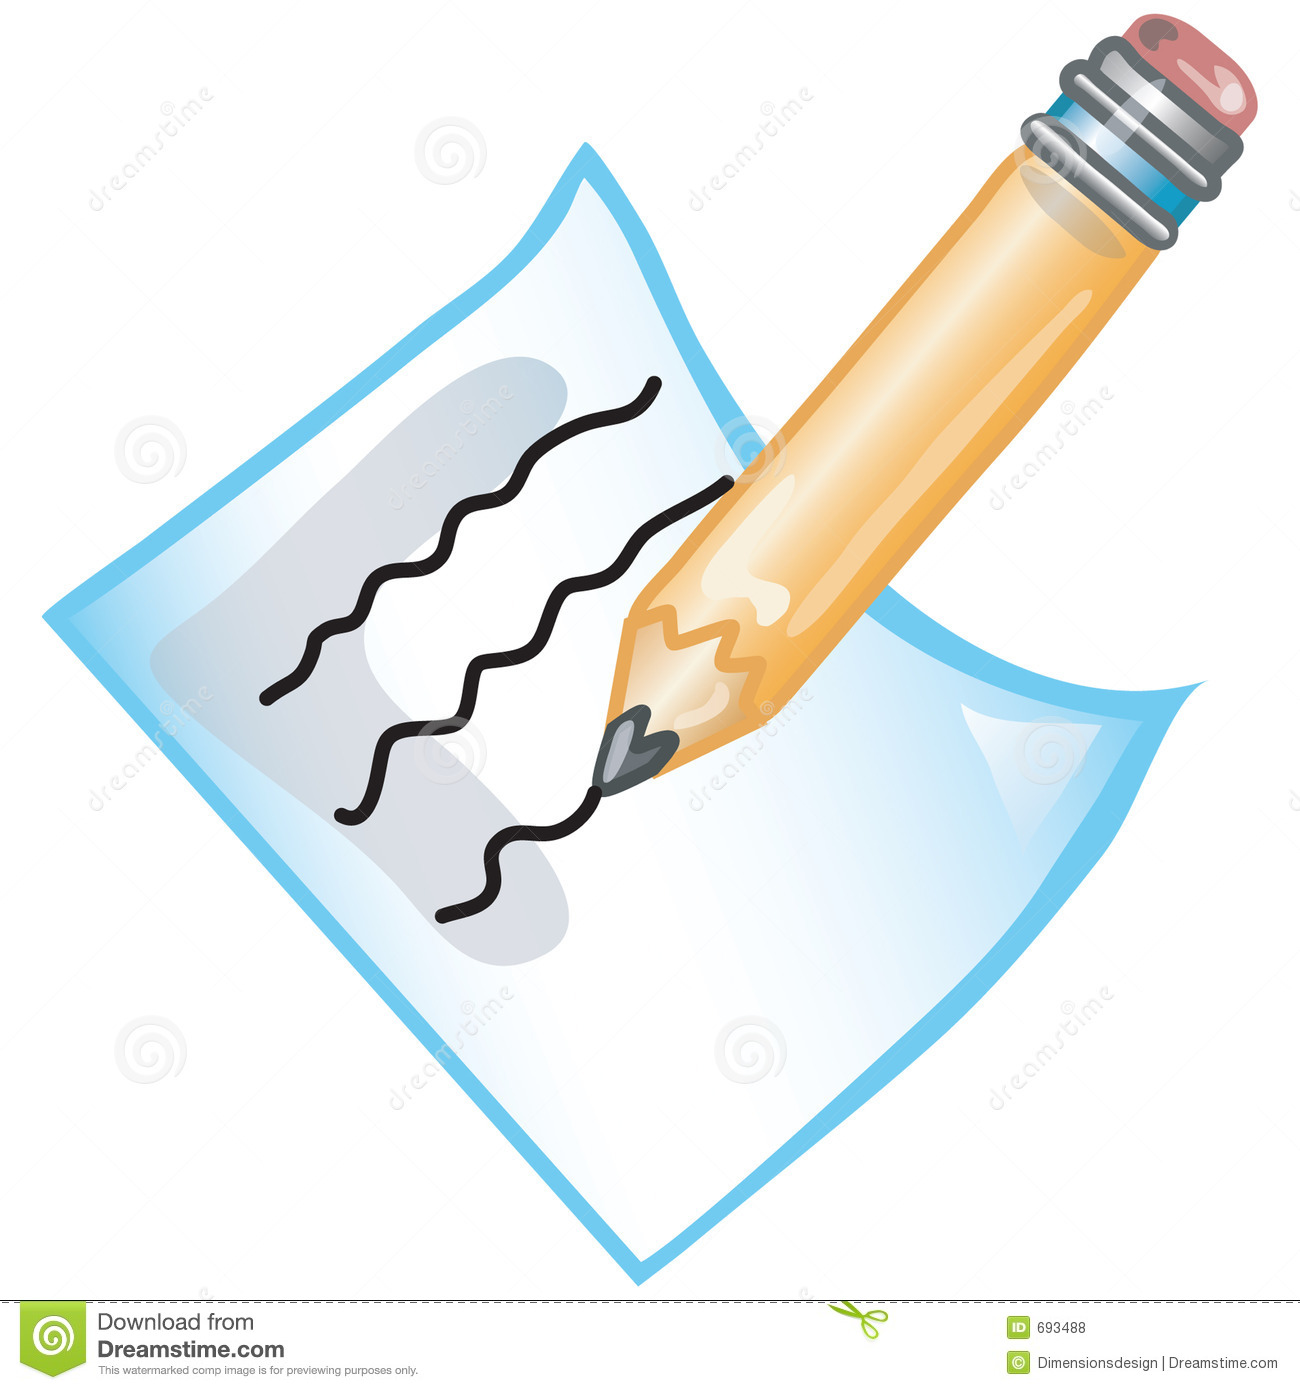 Clipart writing written note. Notes free download best